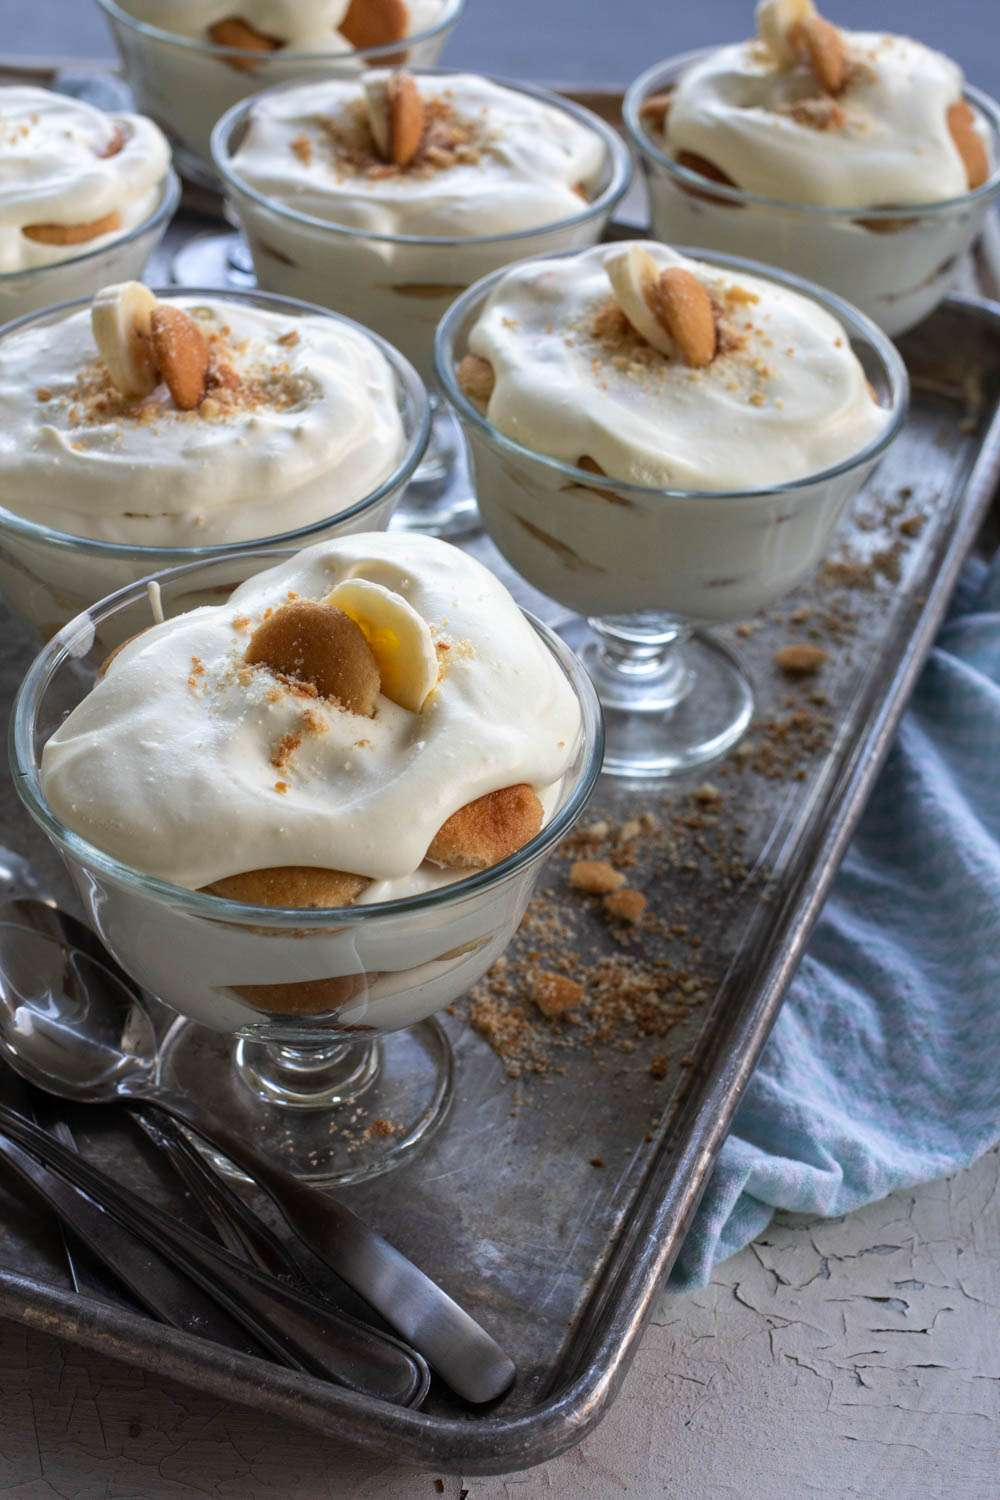 Magnolia Bakery Banana Pudding in small glass bowls with spoons on a cookie sheet.